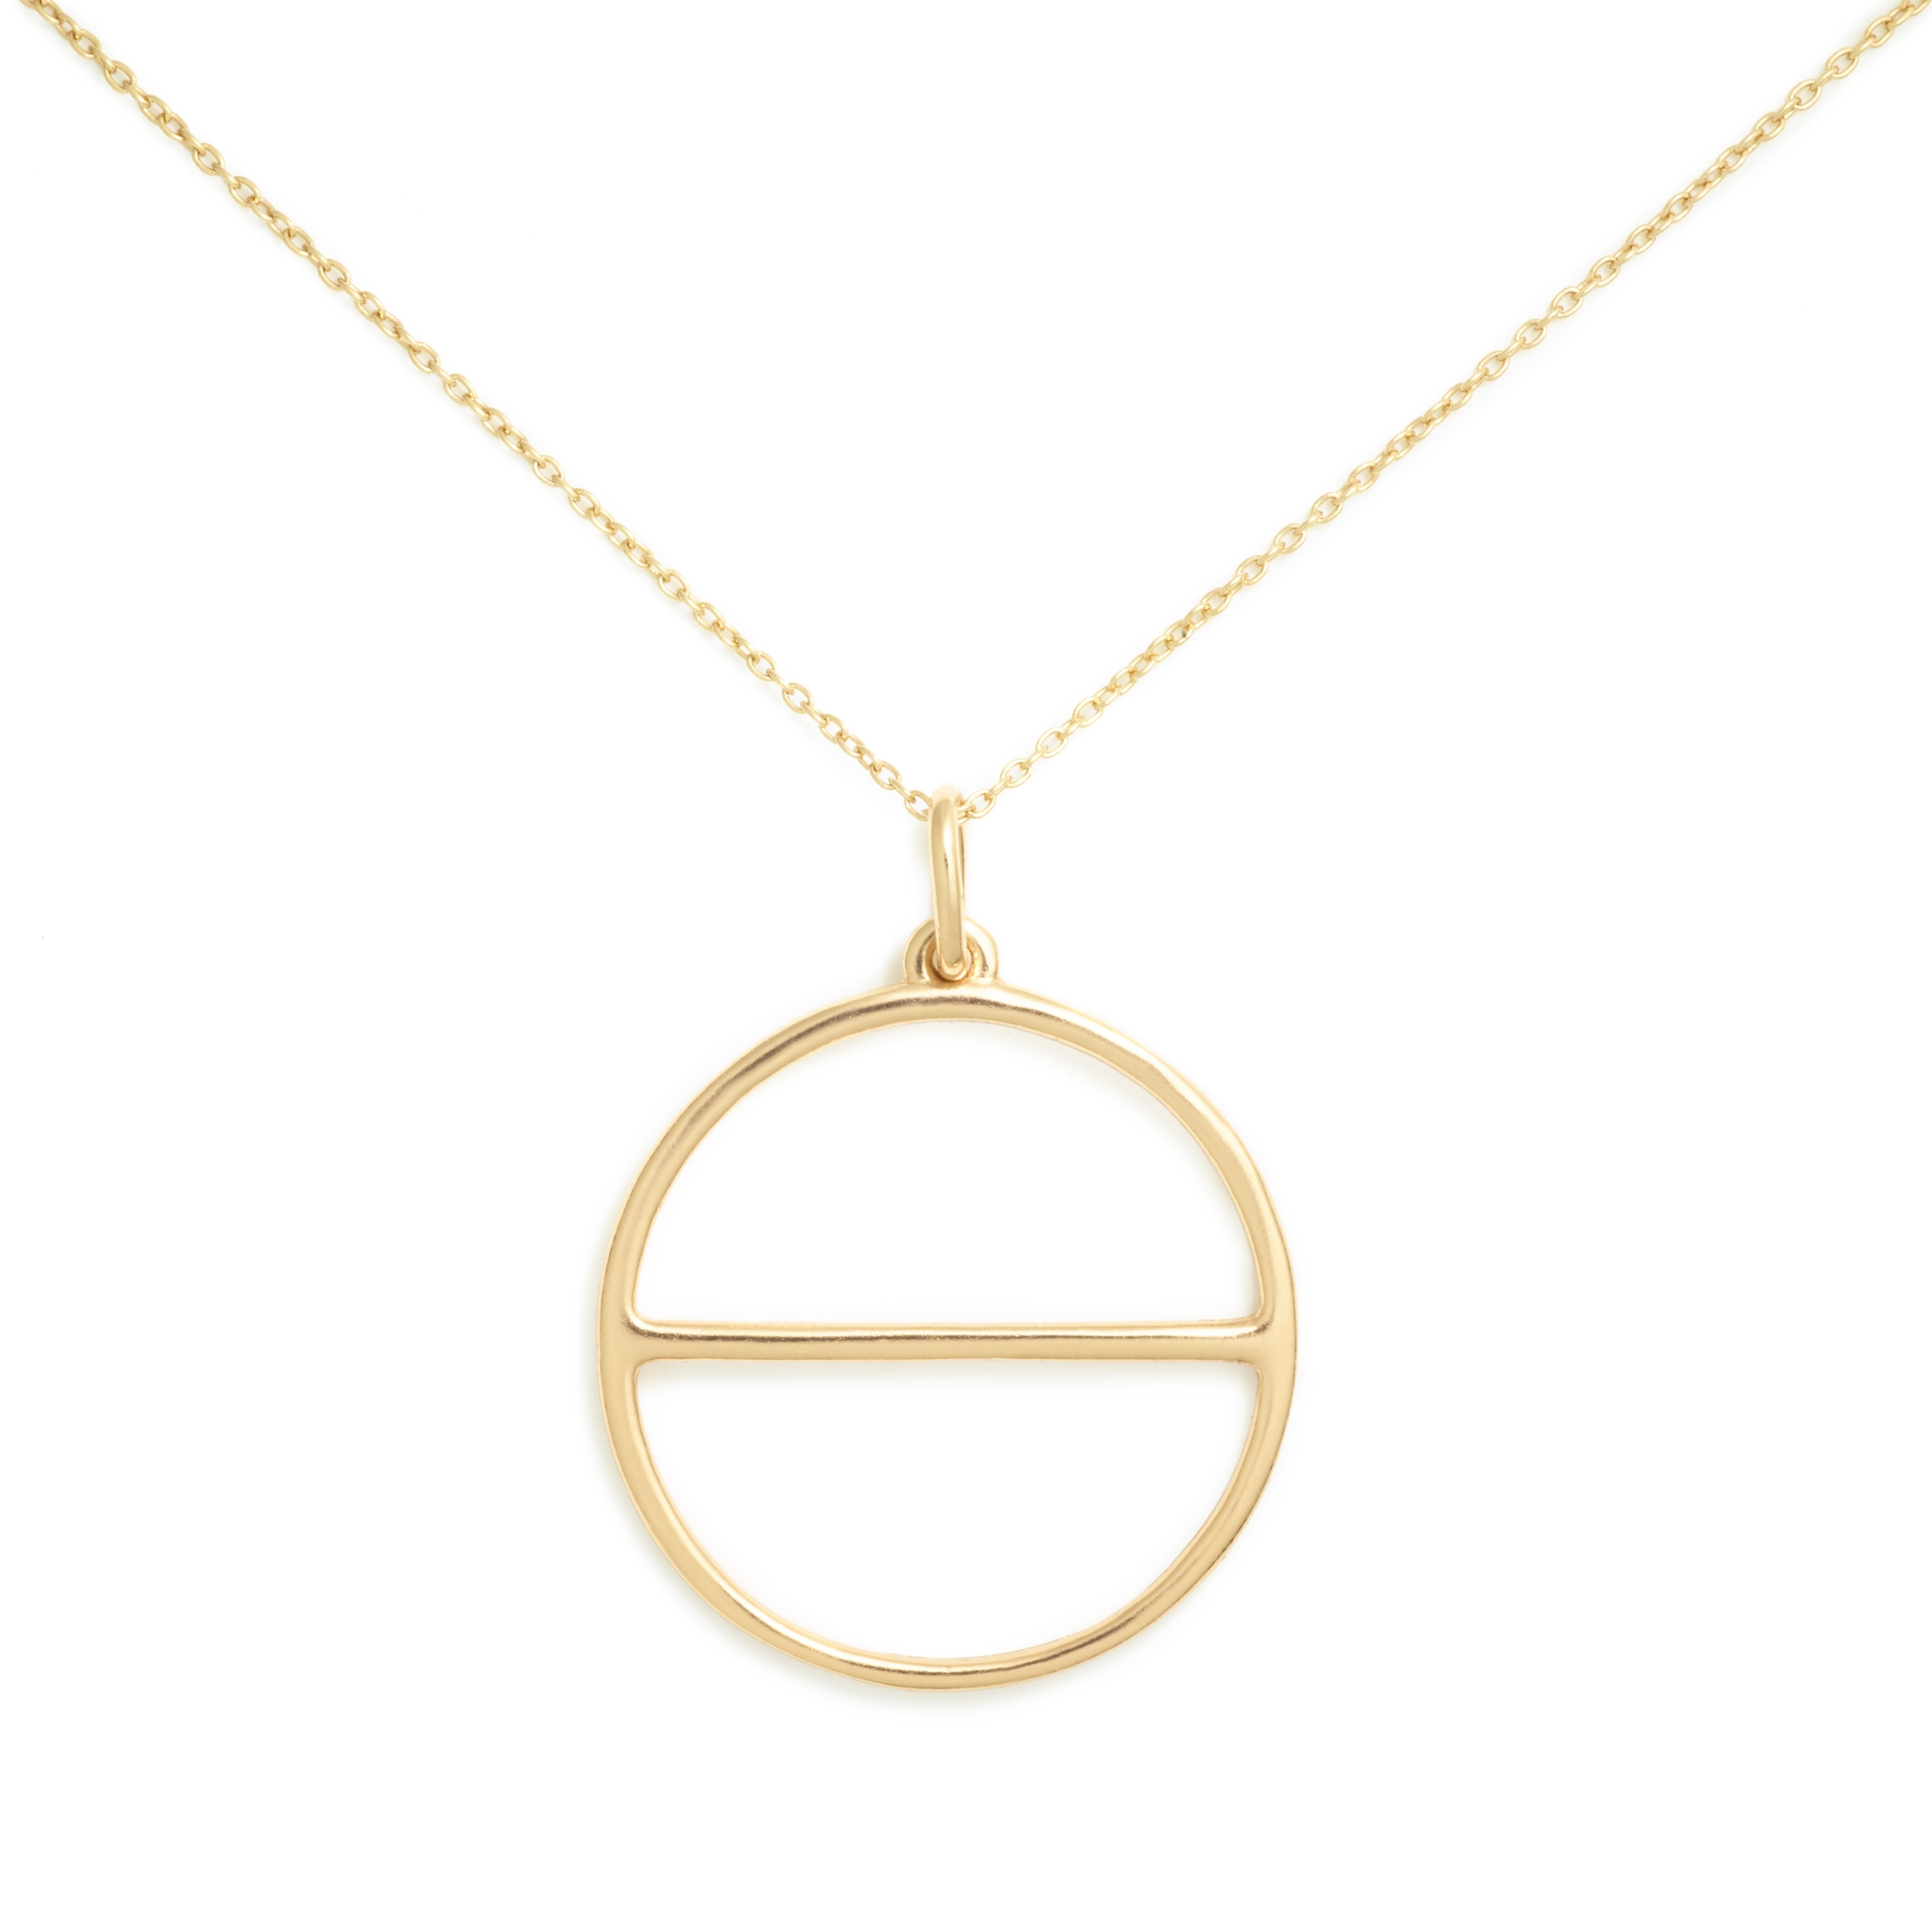 Salt Symbol Necklace (Large), Yellow Gold Plated